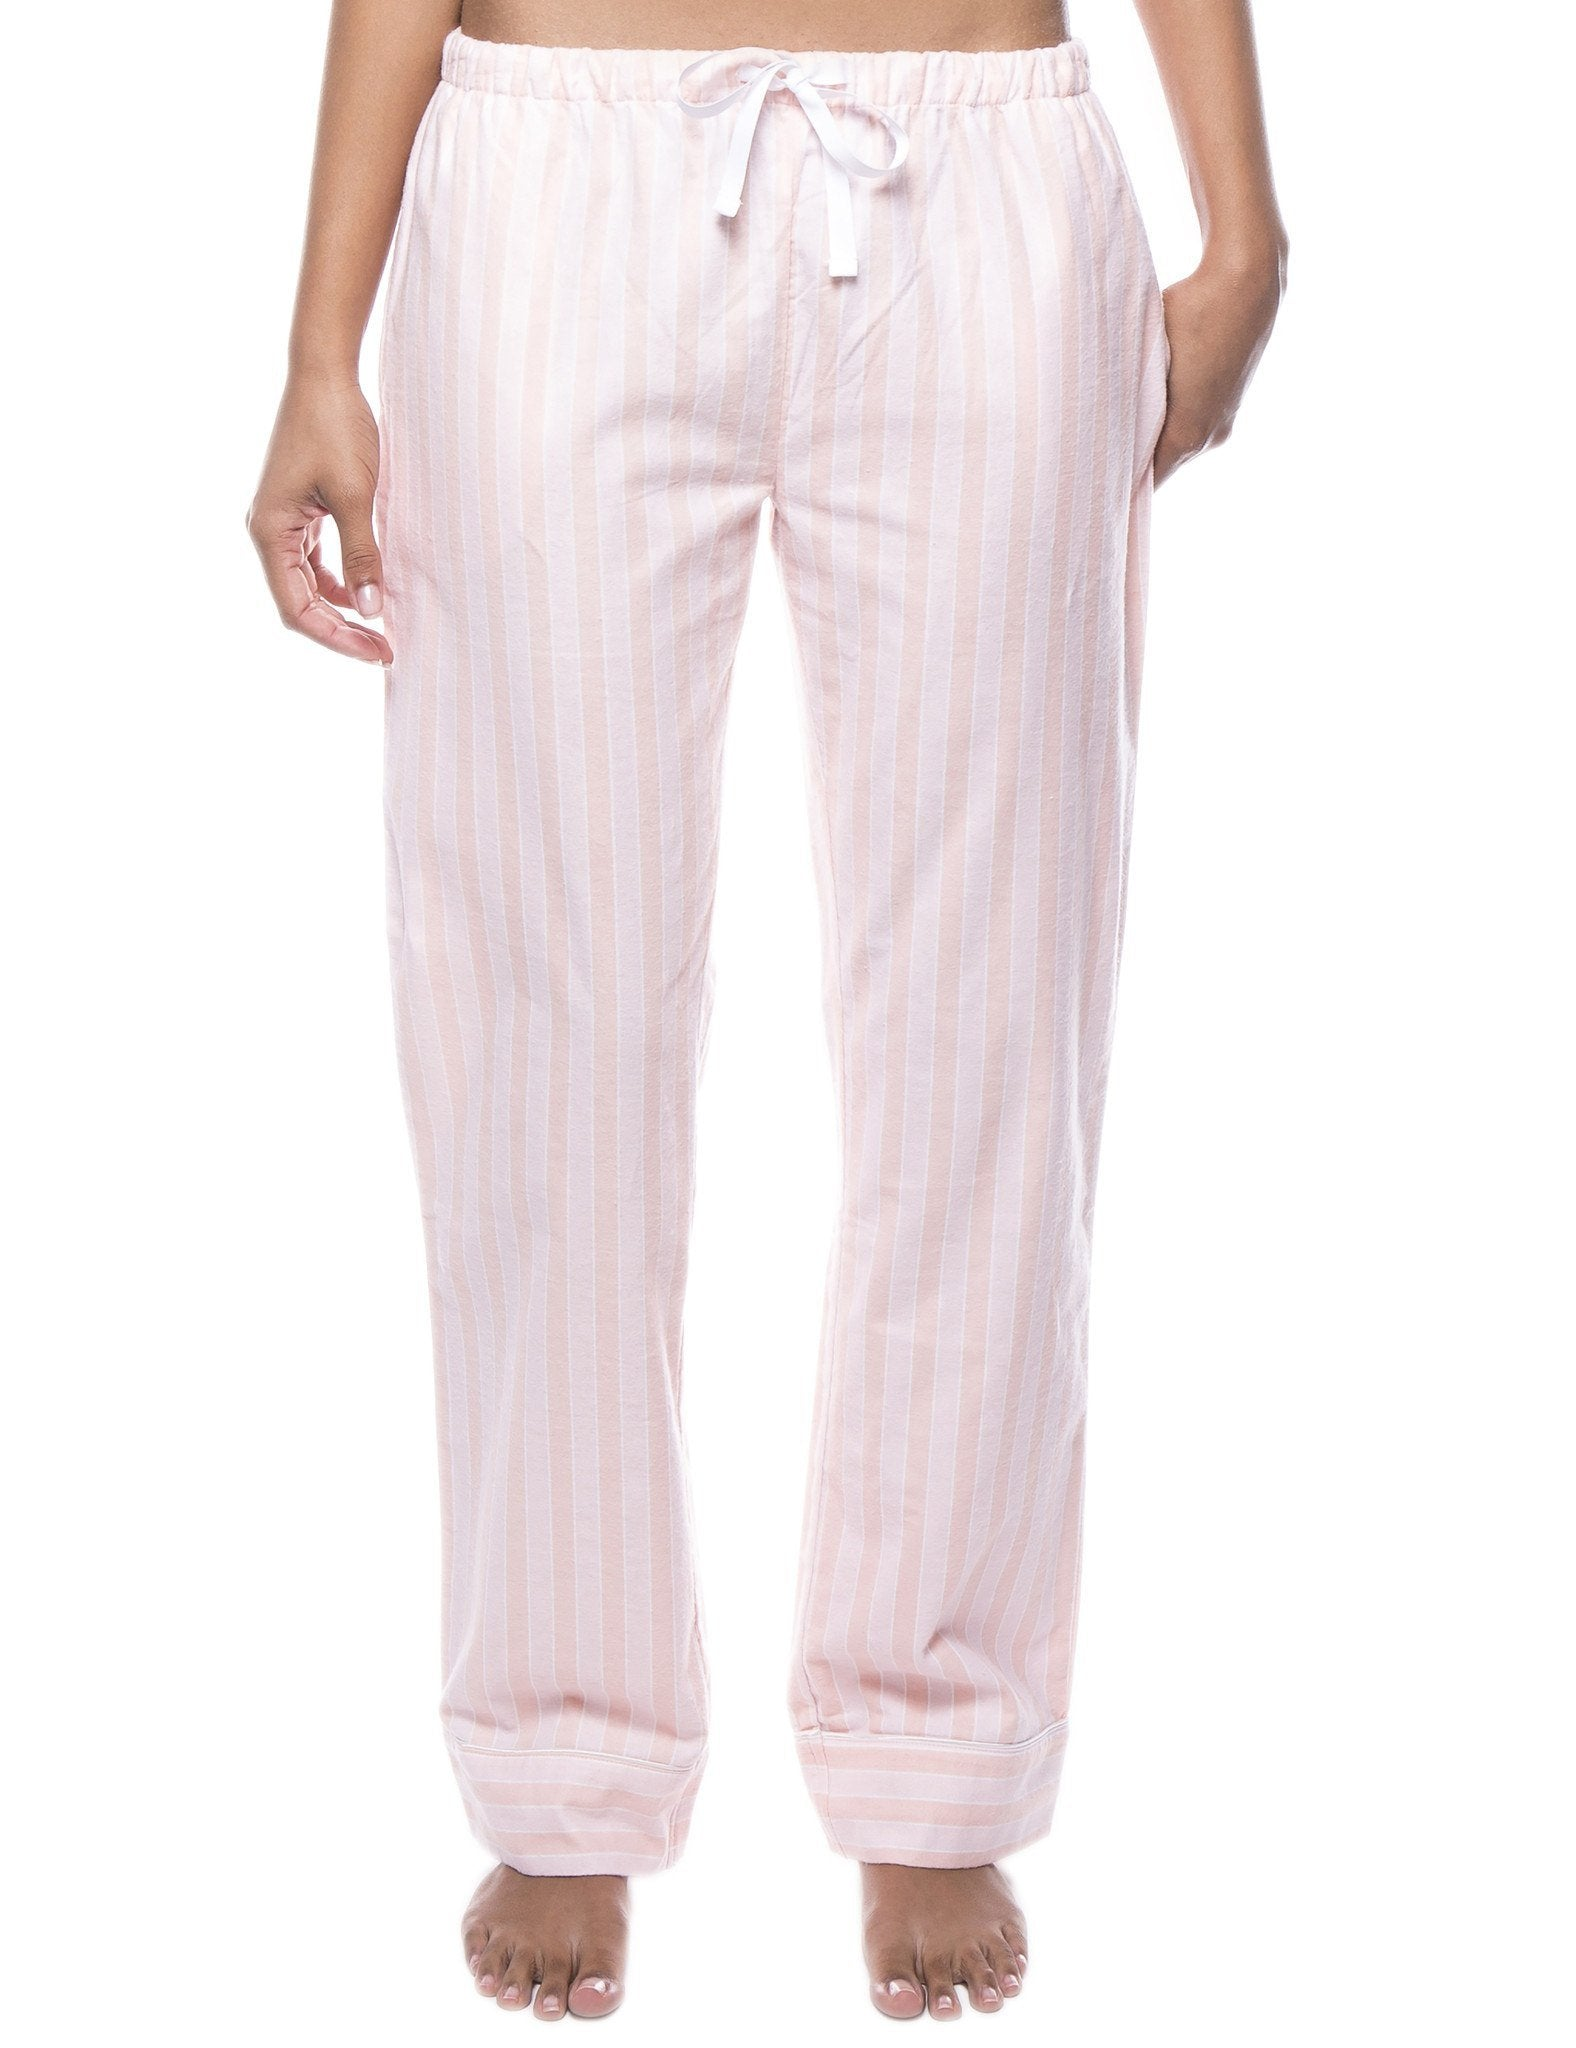 Womens 100% Cotton Flannel Lounge Pants - Stripes Pink